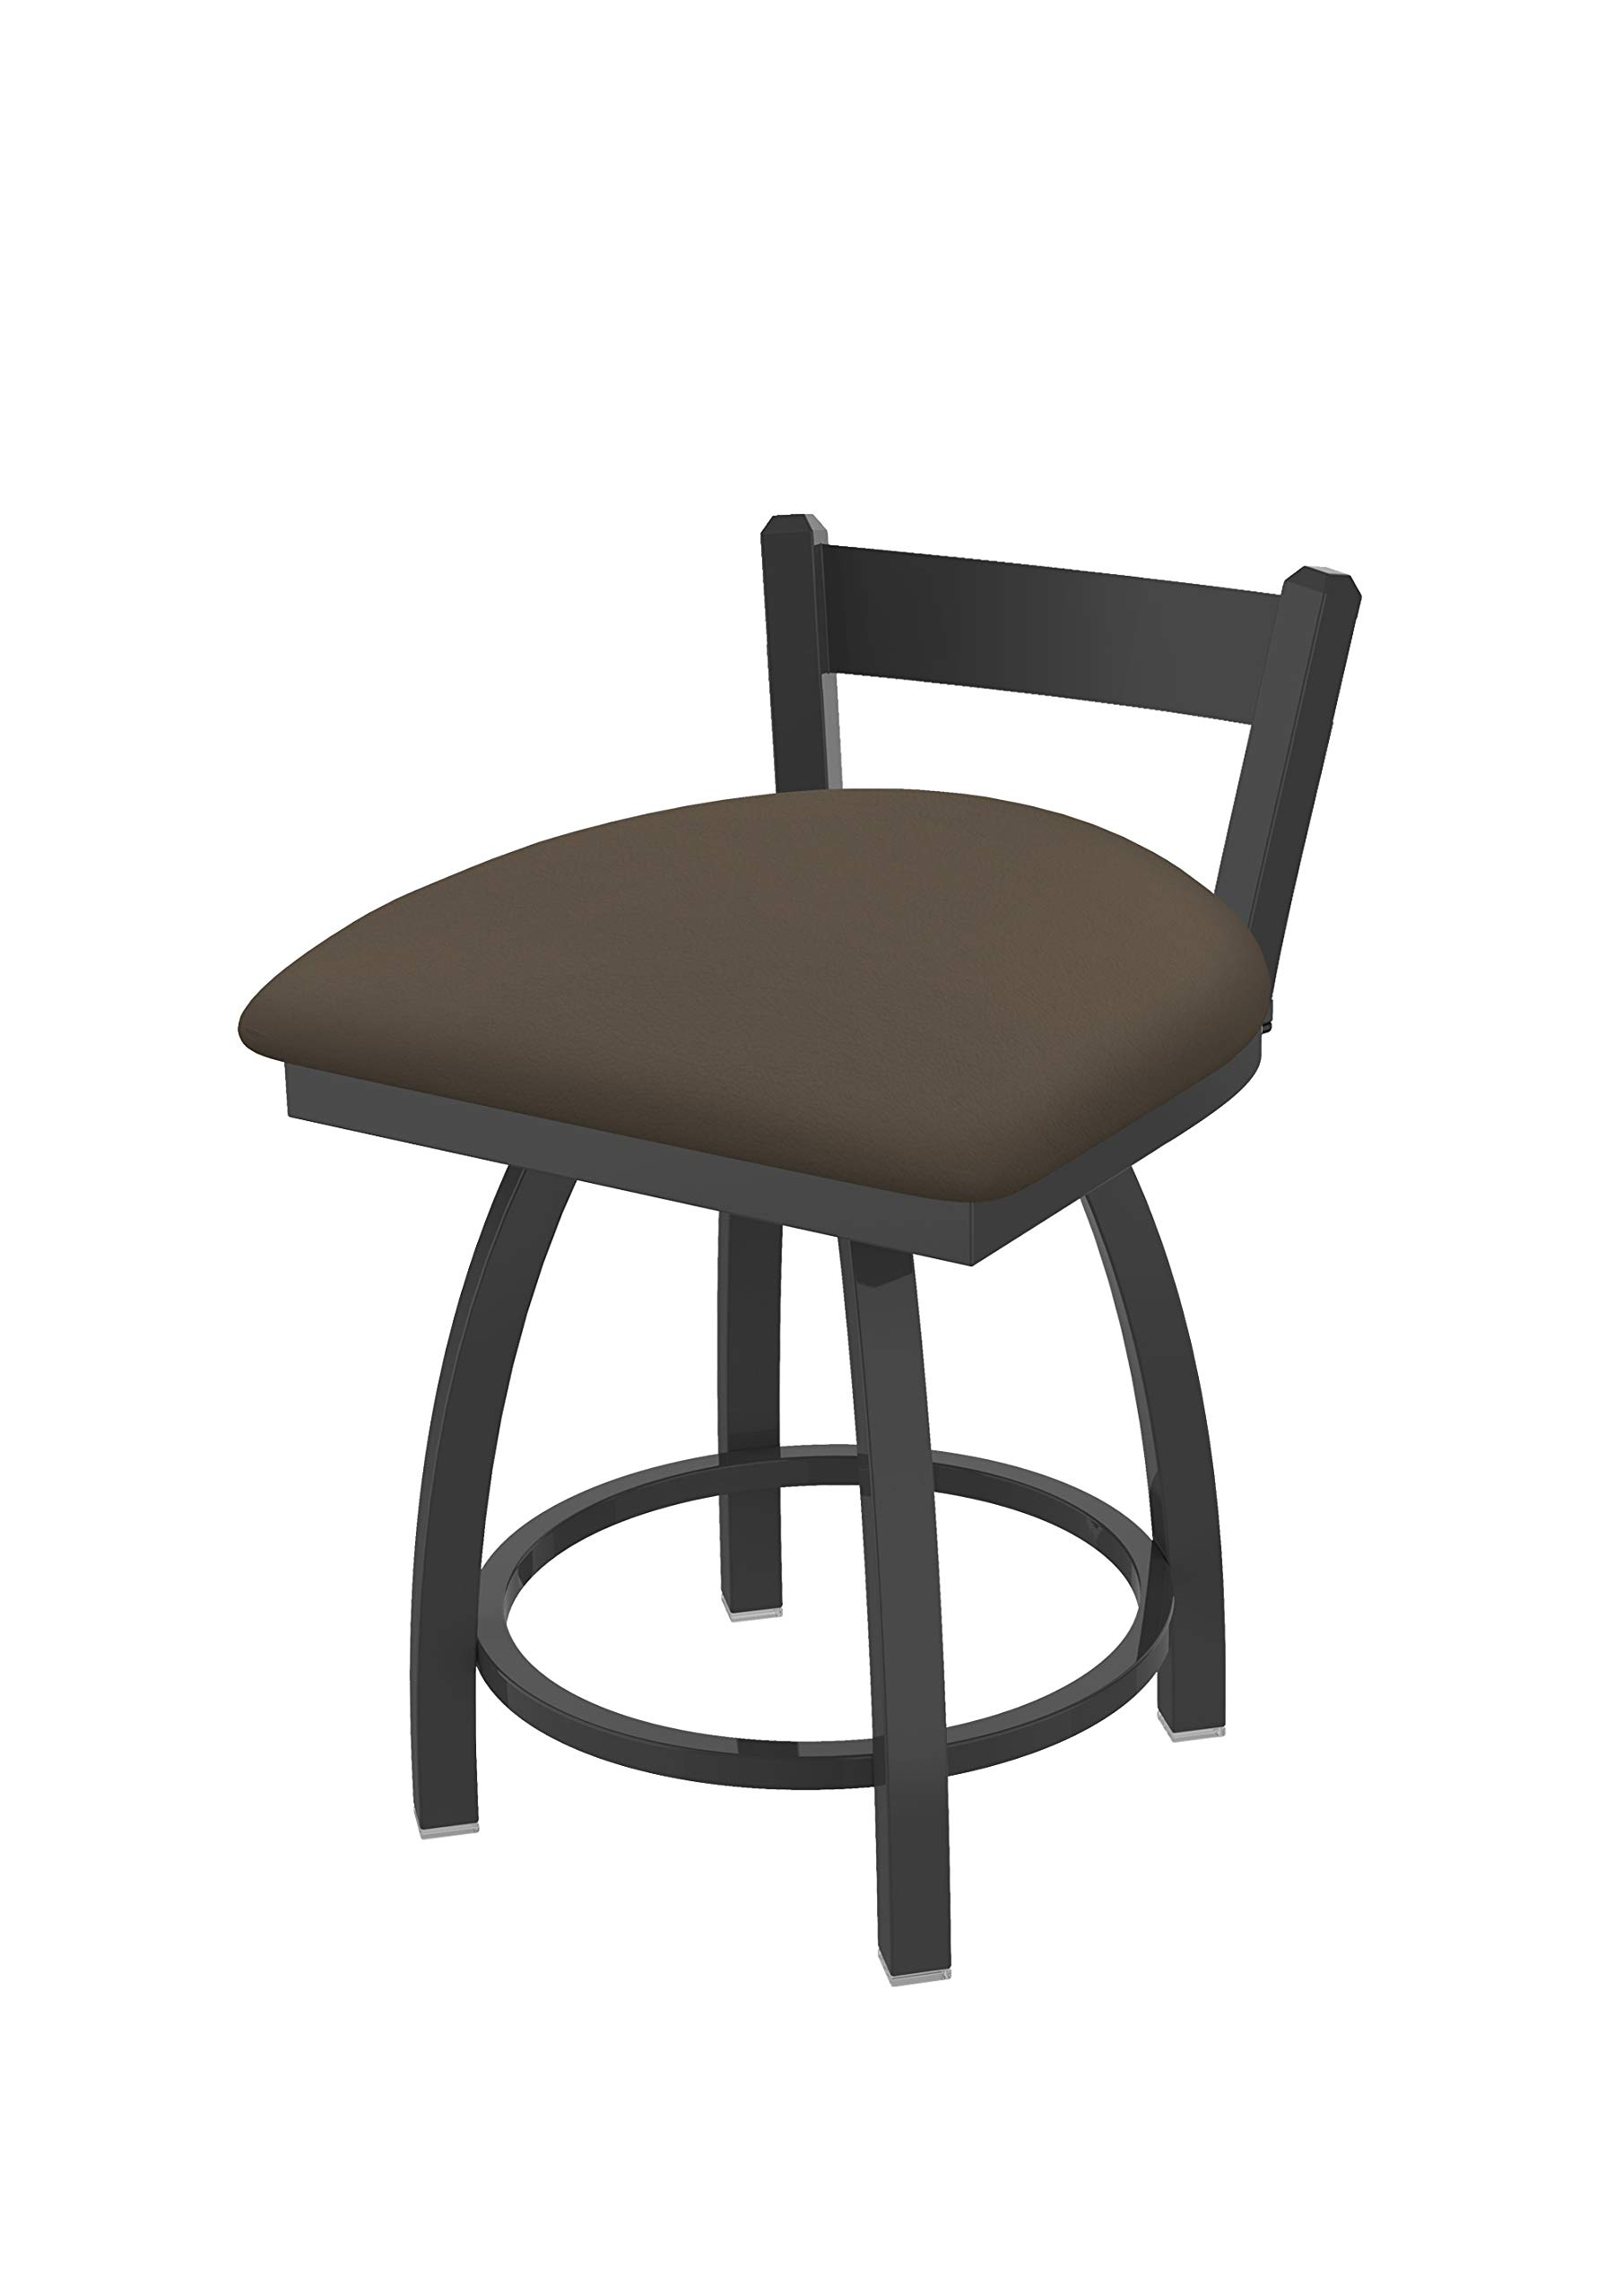 Holland Bar Stool Co. 82118PW006 821 Catalina 18'' Low Back Swivel Vanity Pewter Finish and Canter Earth Seat Bar Stool,